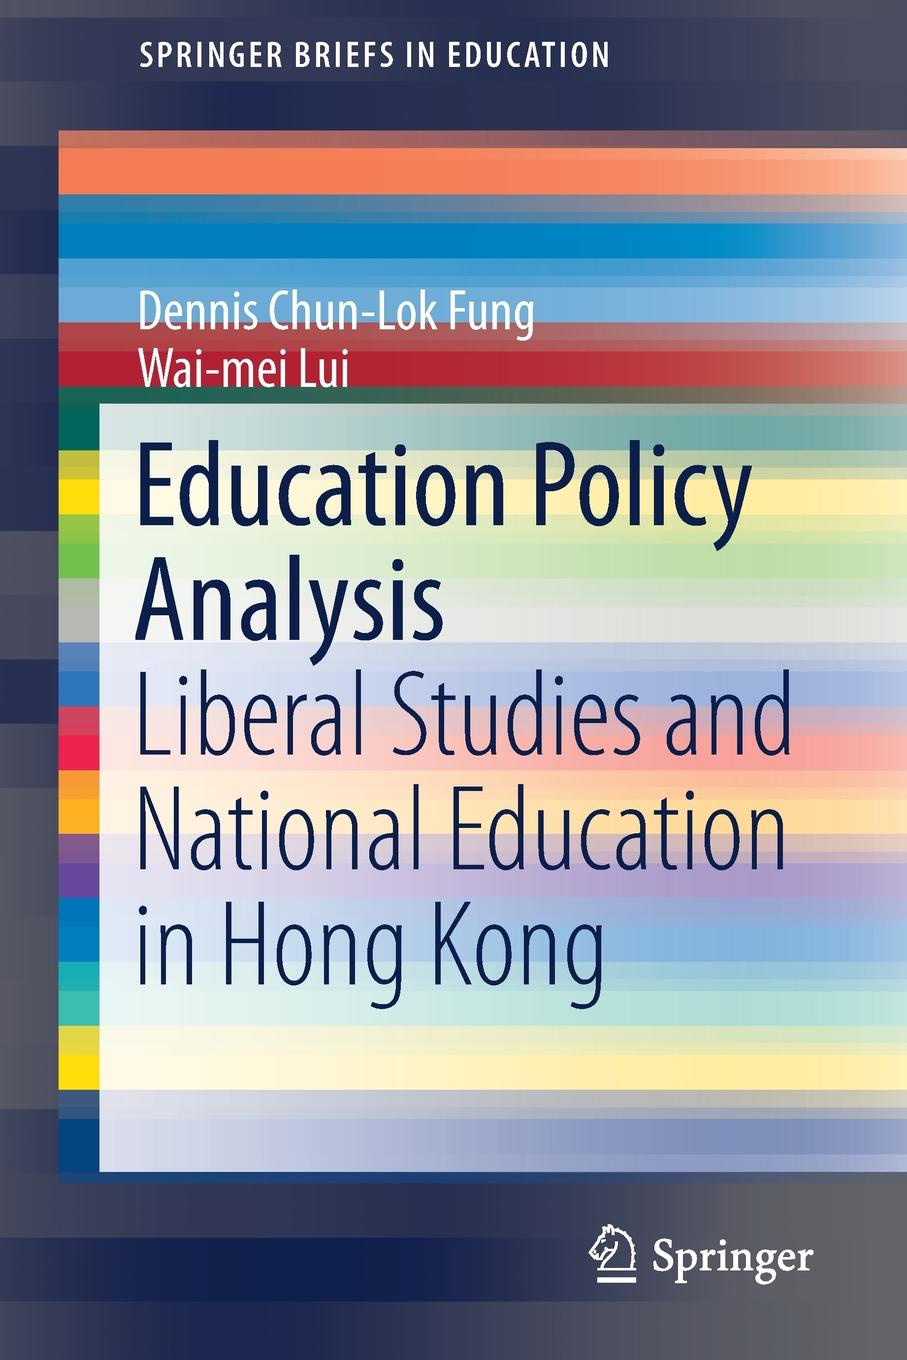 Dennis Chun-Lok Fung, Wai-mei Lui Education Policy Analysis. Liberal Studies and National Education in Hong Kong leadership and policy in education